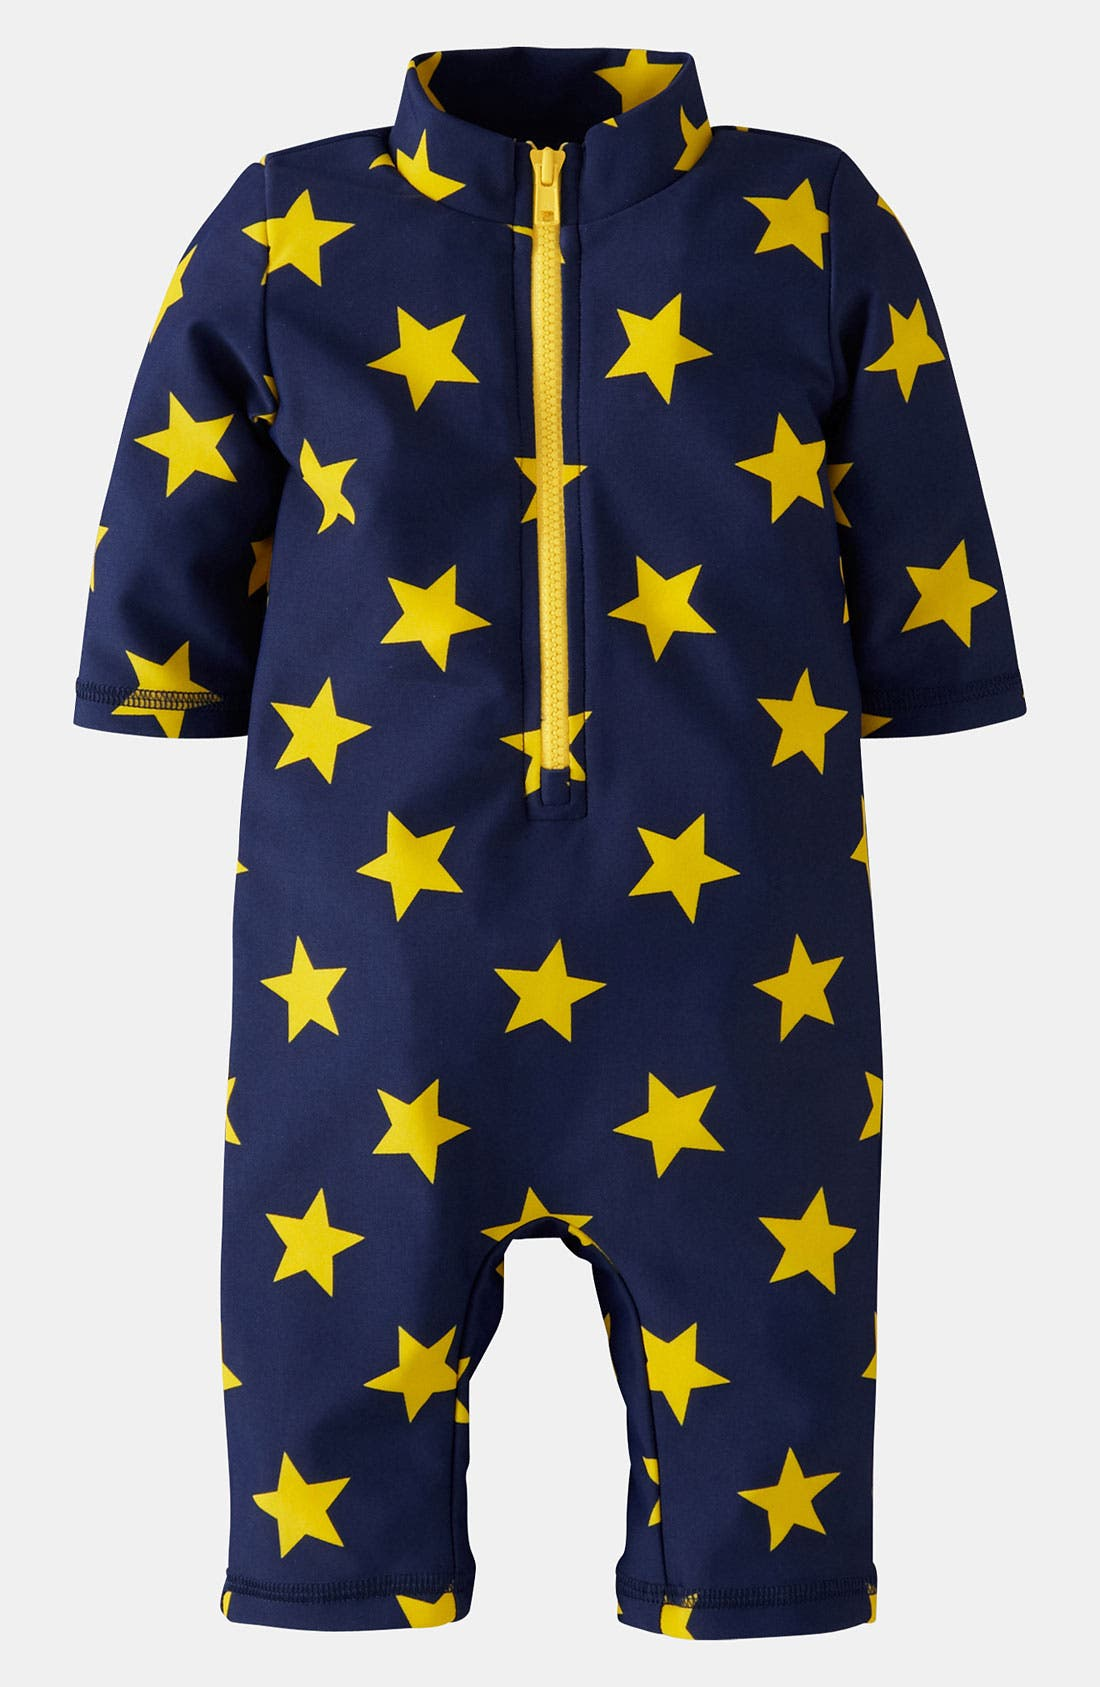 Main Image - Mini Boden Surf Suit (Baby)